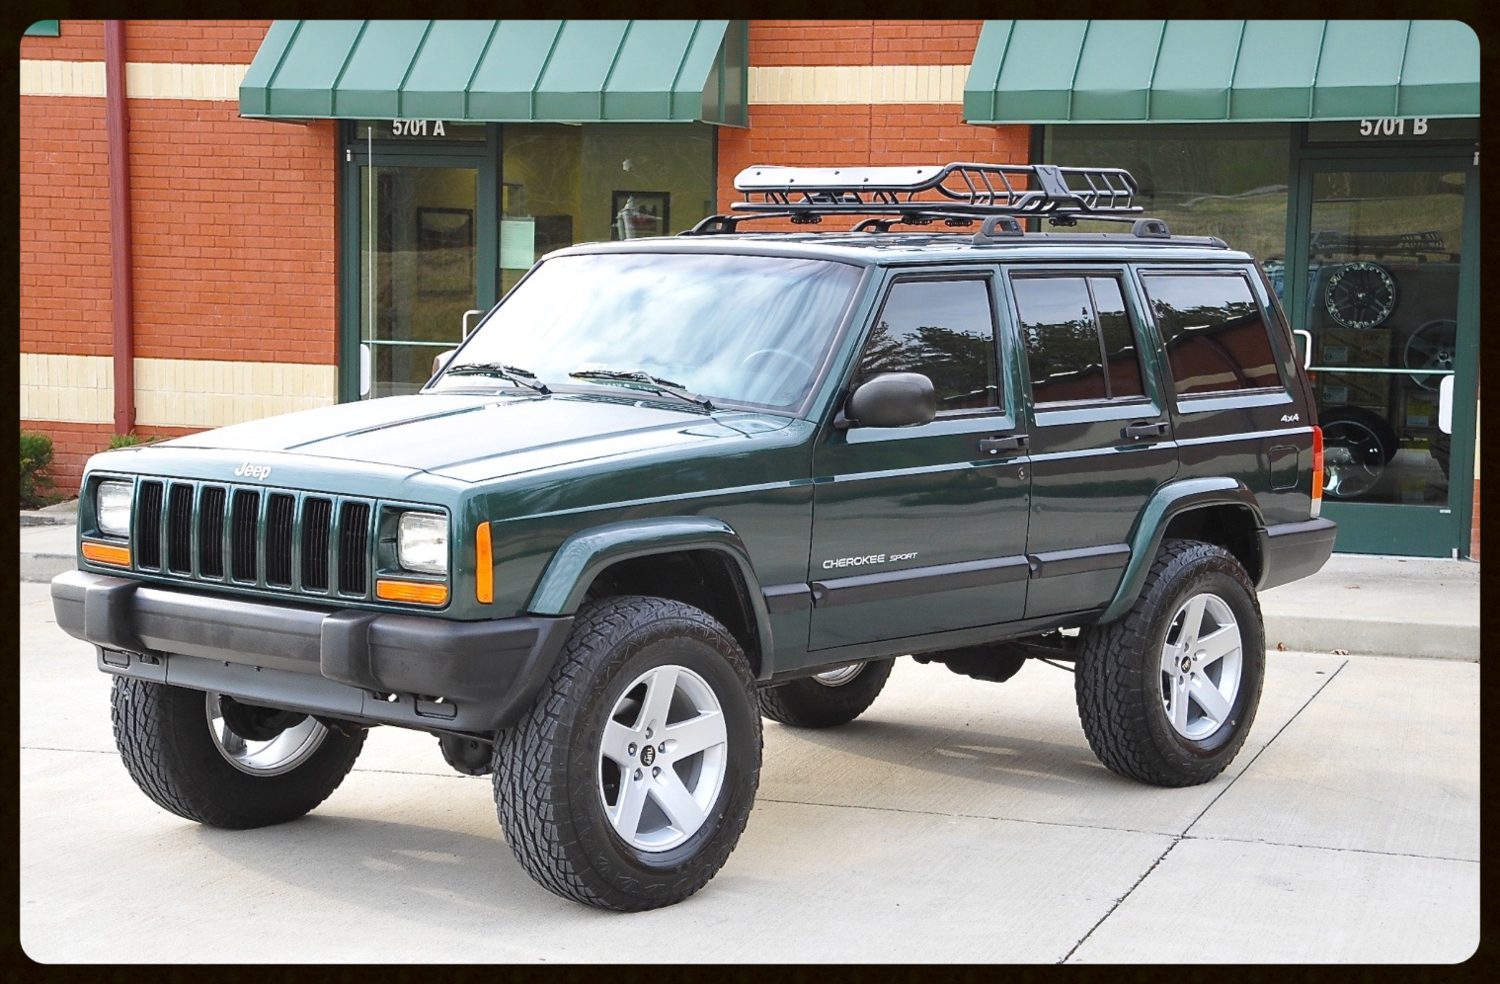 Lifted Cherokee Sport Xj For Sale Lifted Jeep Cherokee Built Jeep Cherokee Davis Autosports Jeep Cherokee Lift Kits Jeep Cherokee Sport Jeep Cherokee Xj